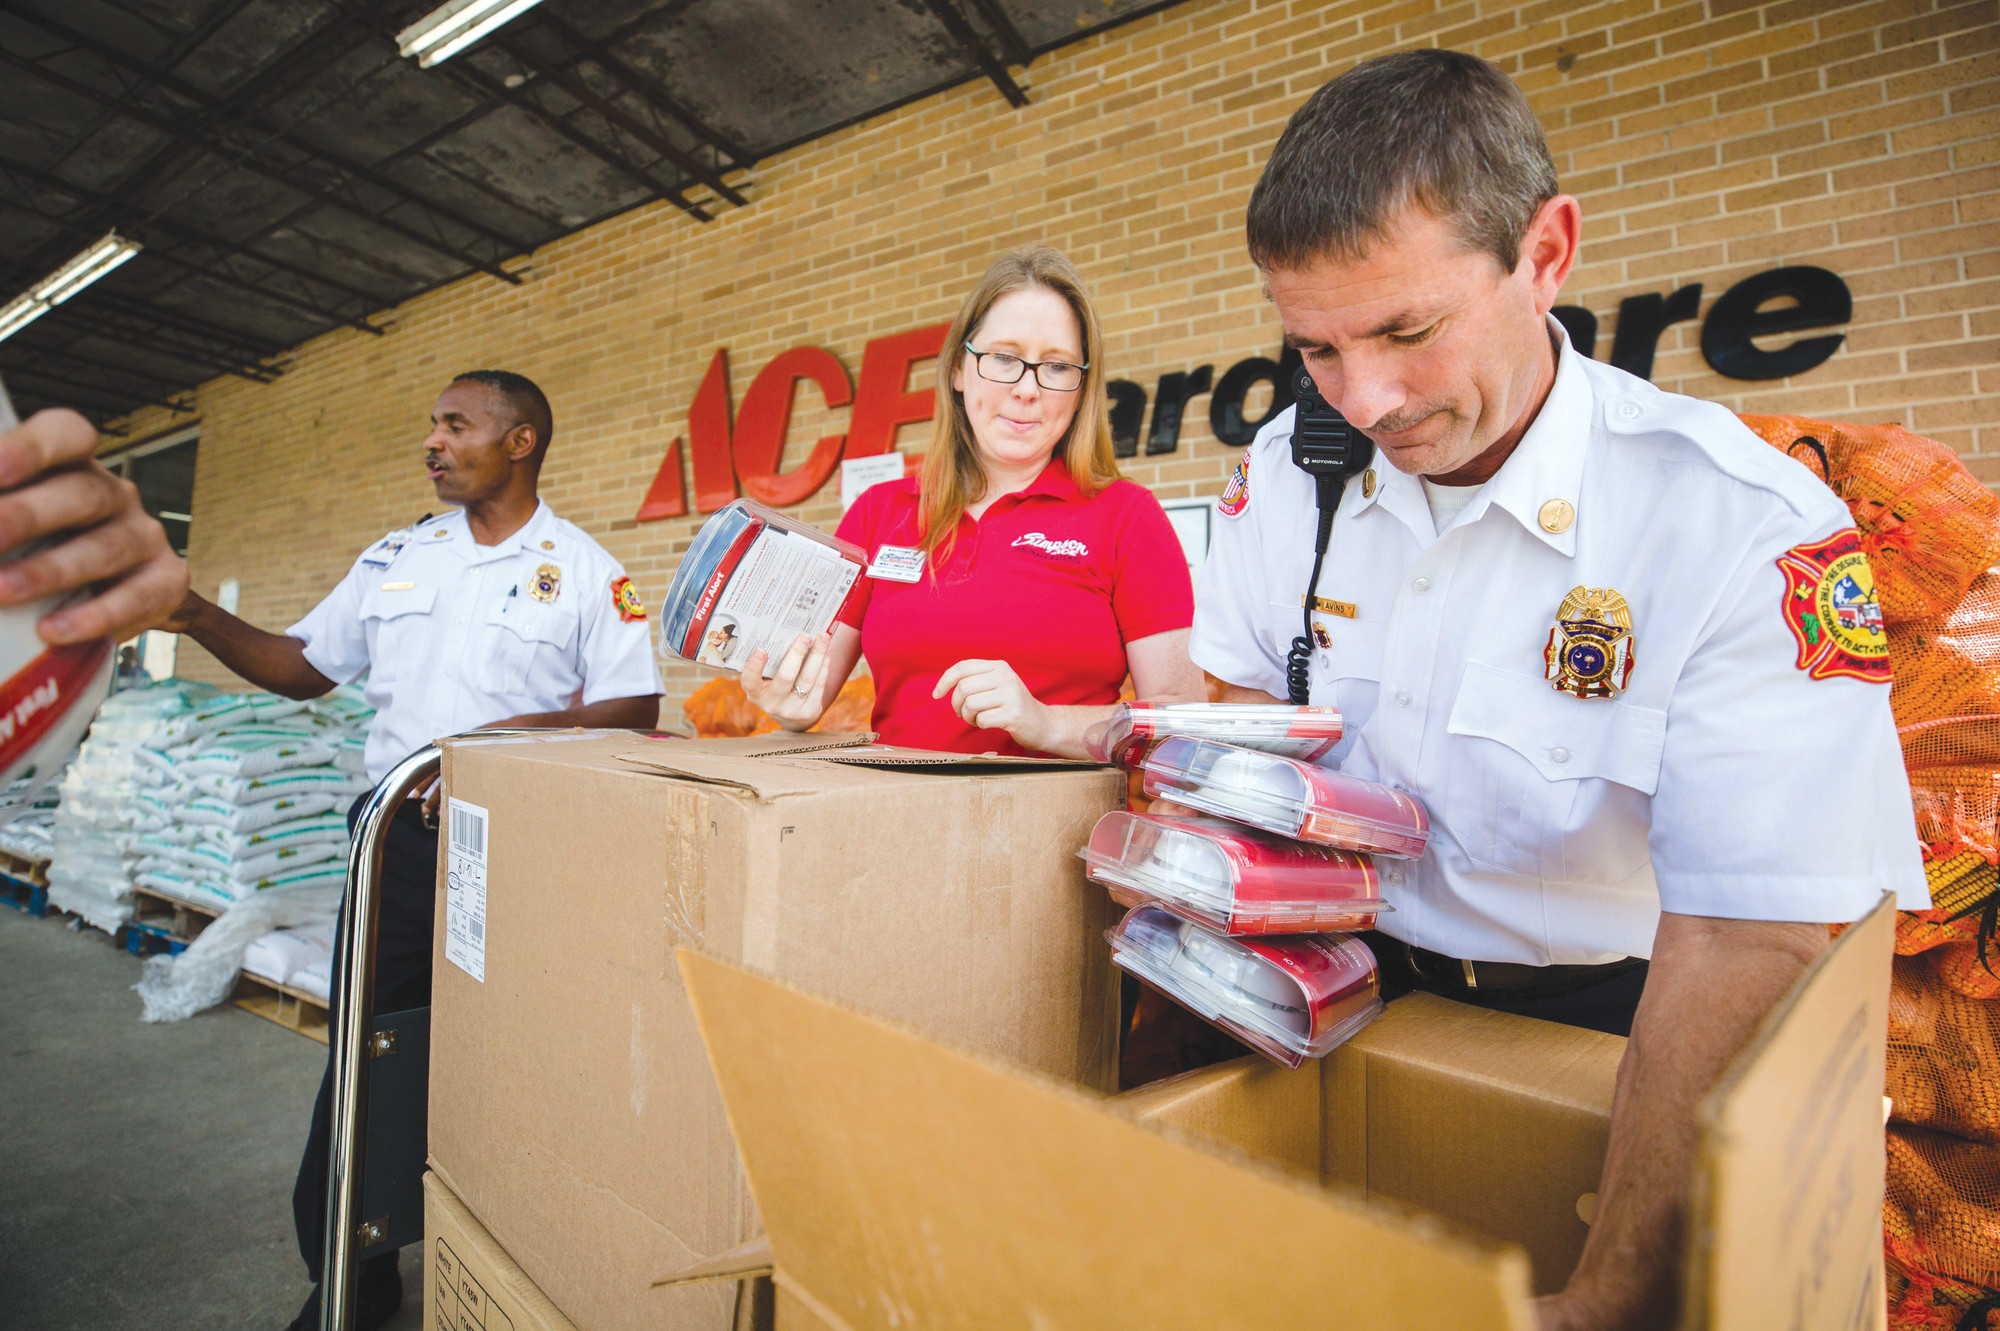 "Simpson ACE Hardware donated 187 smoke detectors to Sumter Fire Department on Thursday, something the store has made a habit of doing on occasion. ""What they think is small is major to us,"" said Fire Prevention Specialist Selena Ruth Smith. Along with Smith, Division Chief Johnny L. Rose, Alice Drive A-Shift Engine 212 Lt. Daren Avins, Senior Master Firefighter Todd Kenneth Klavon and firefighter Nicholas Hill were all present to accept the donation."